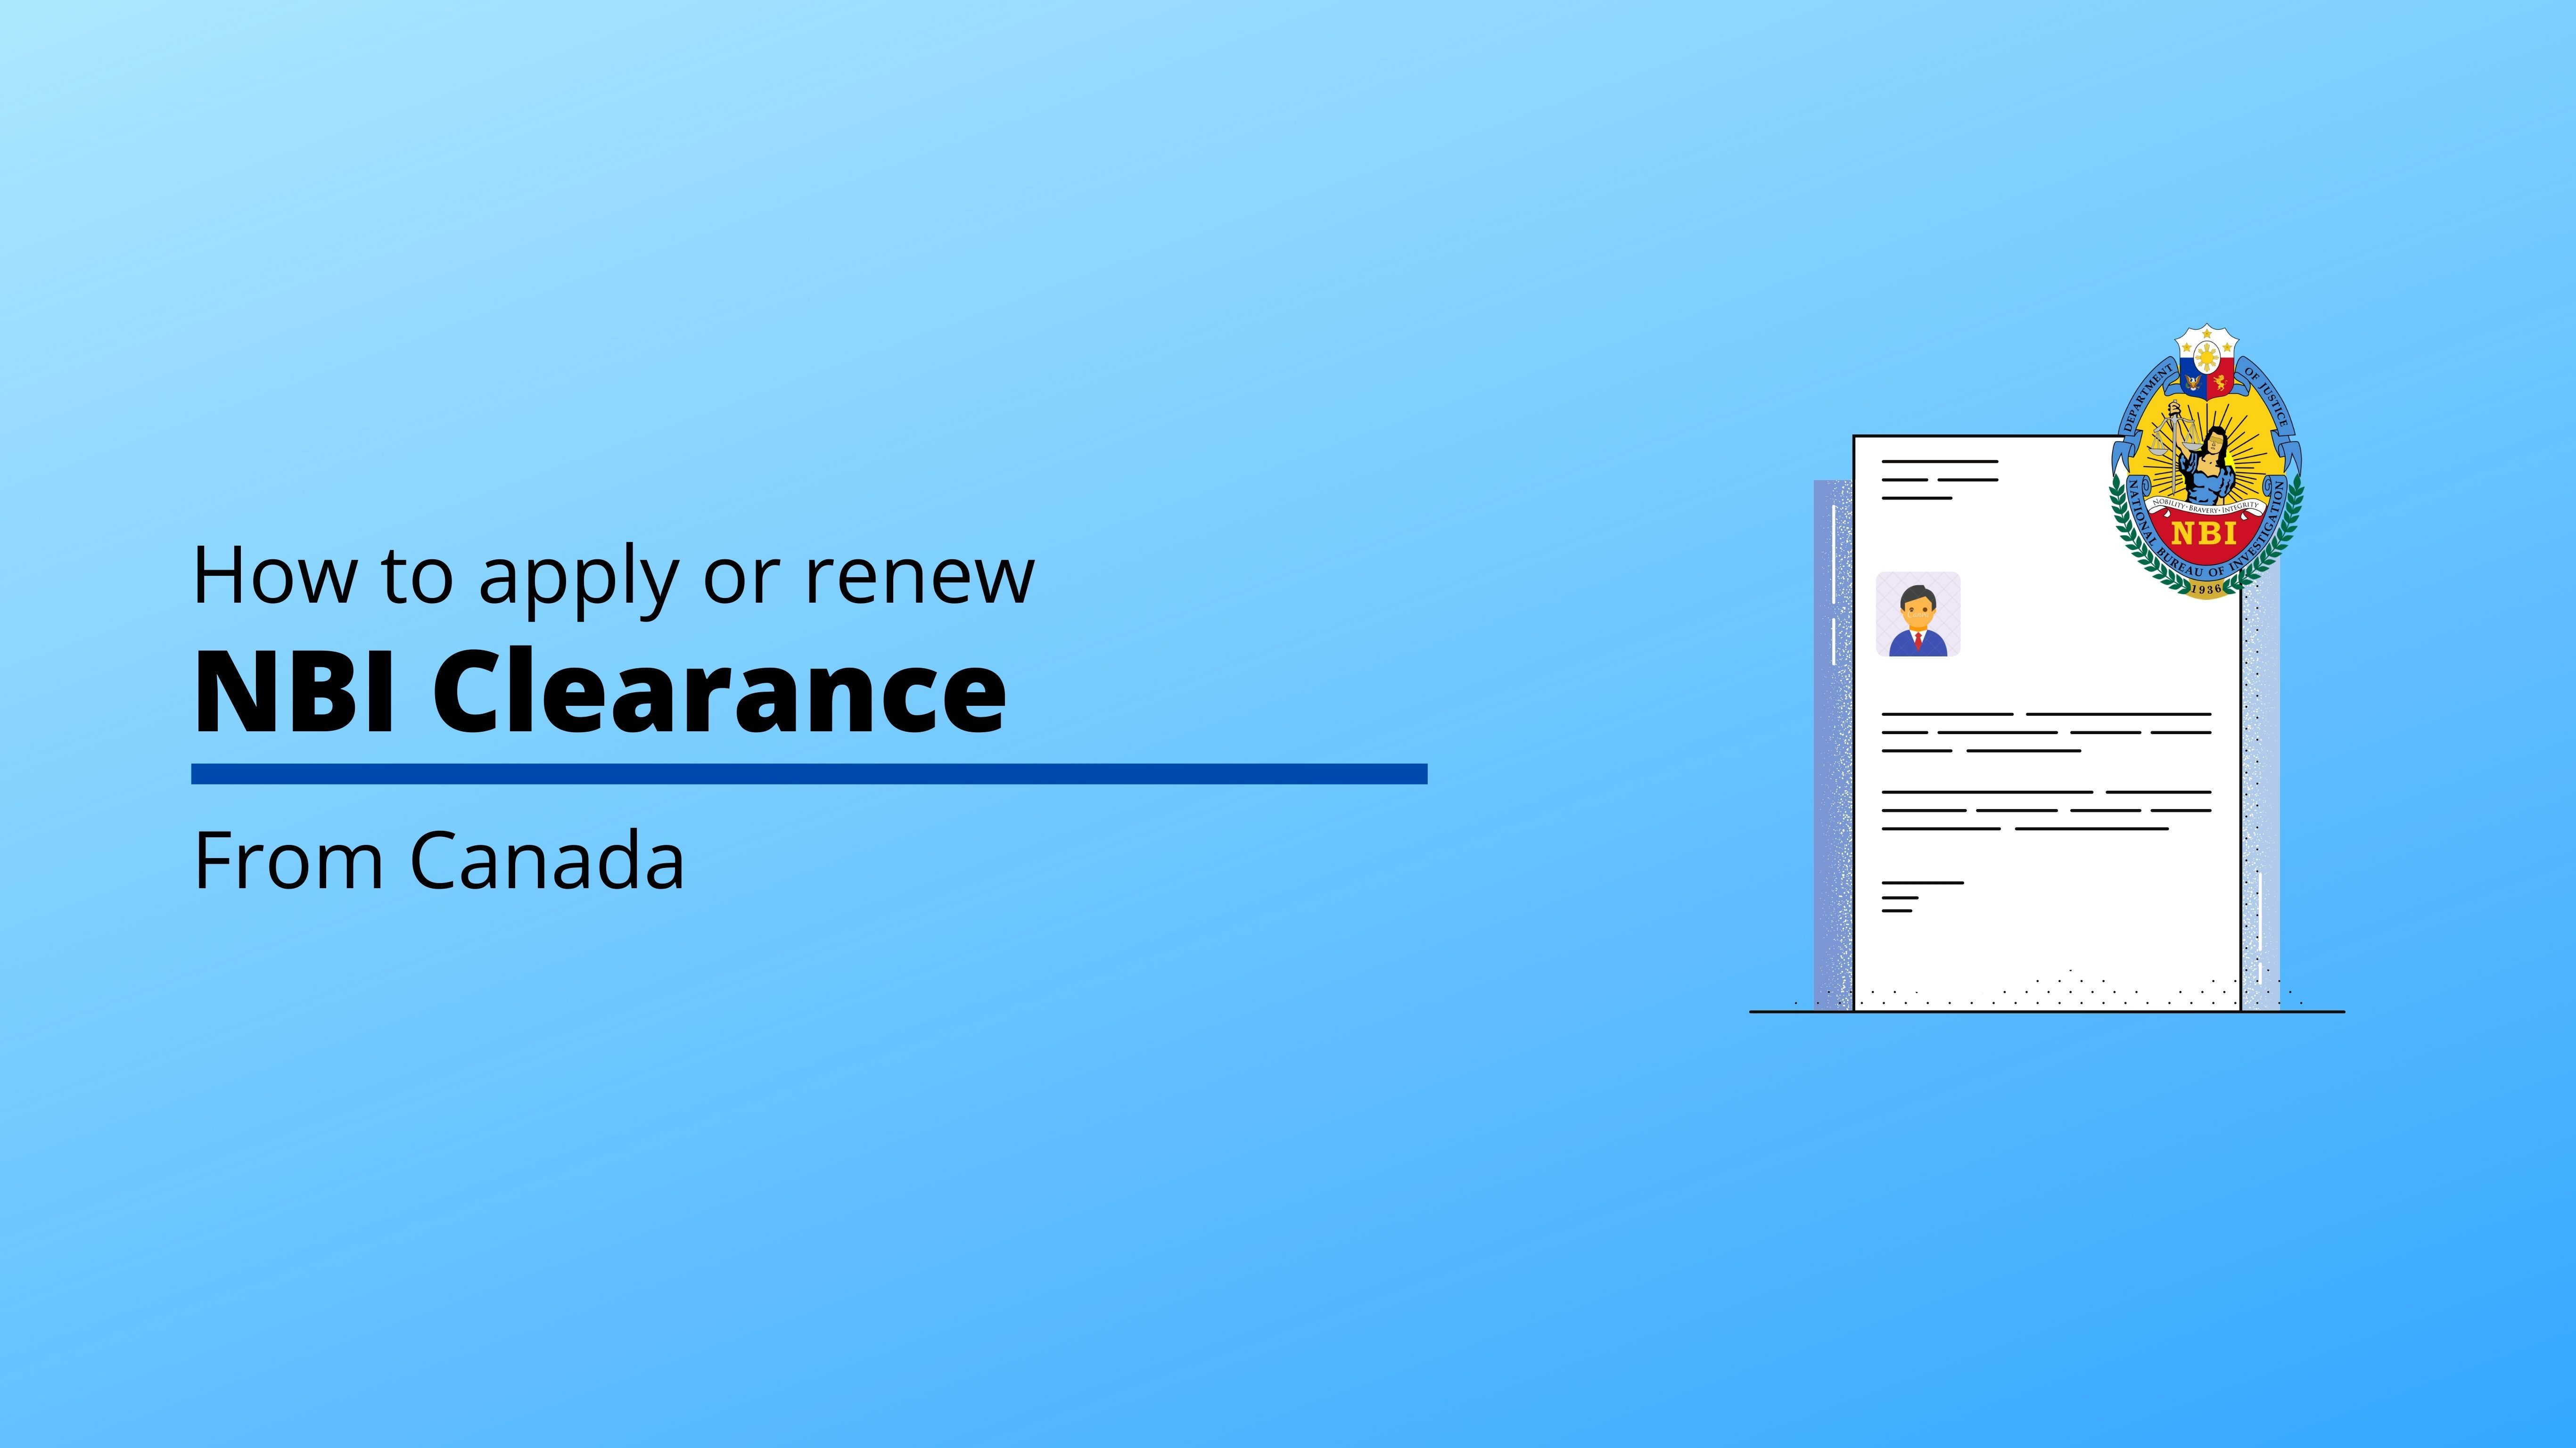 How to Apply or Renew NBI Clearance from Canada